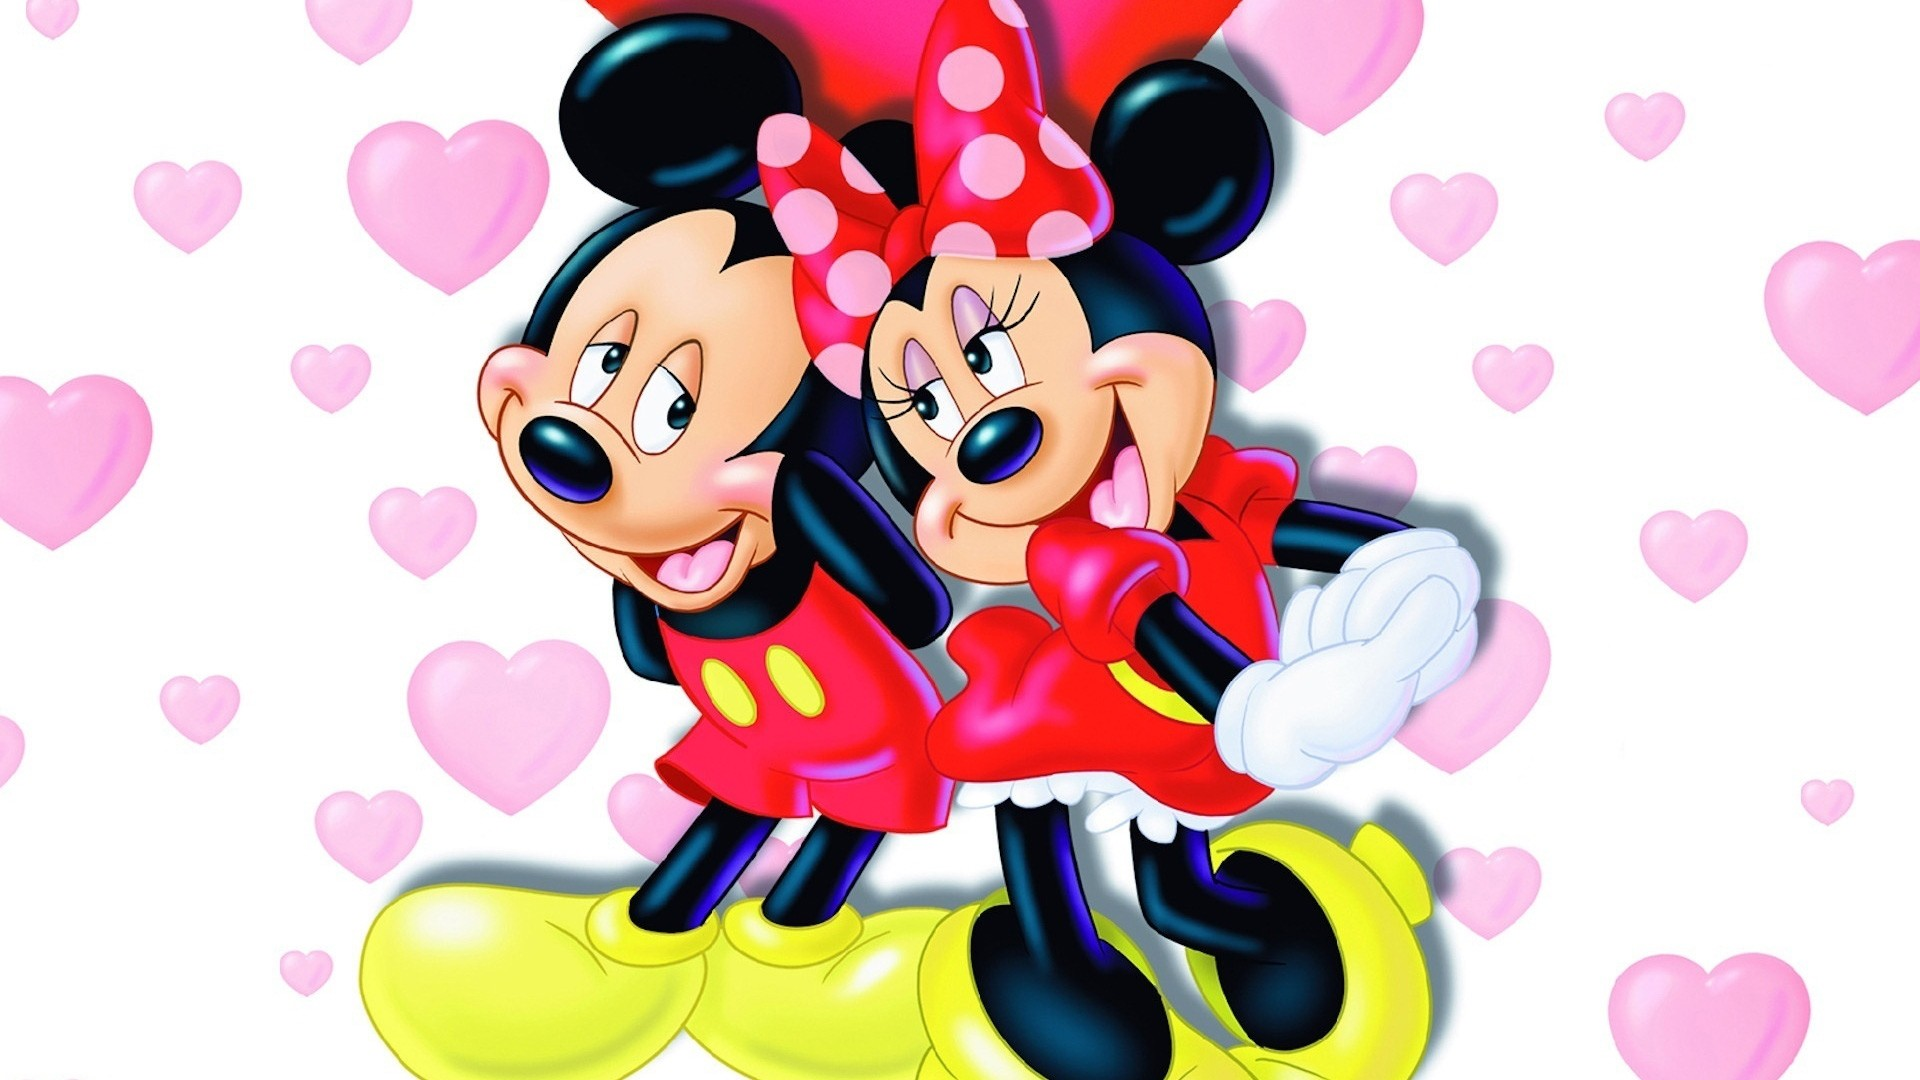 Minnie Mouse HD Wallpaper